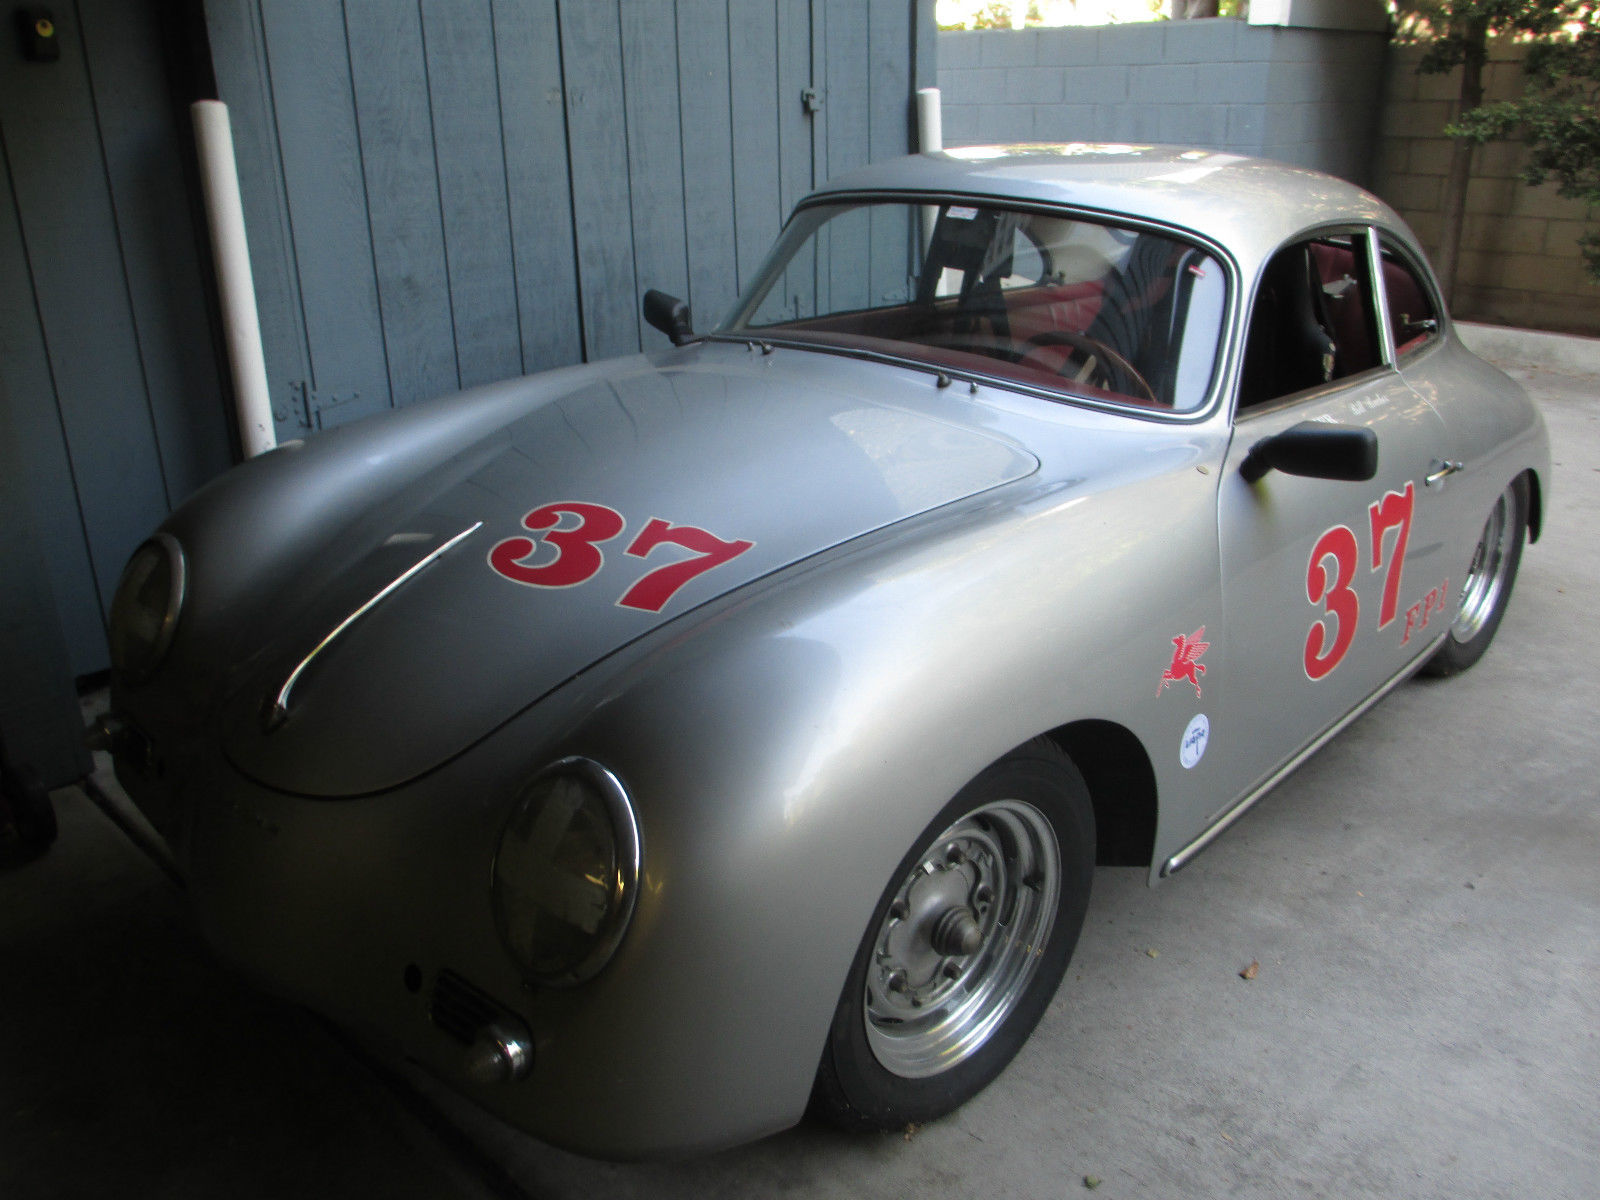 1959 Porsche 356 Coupe Vintage Race Car